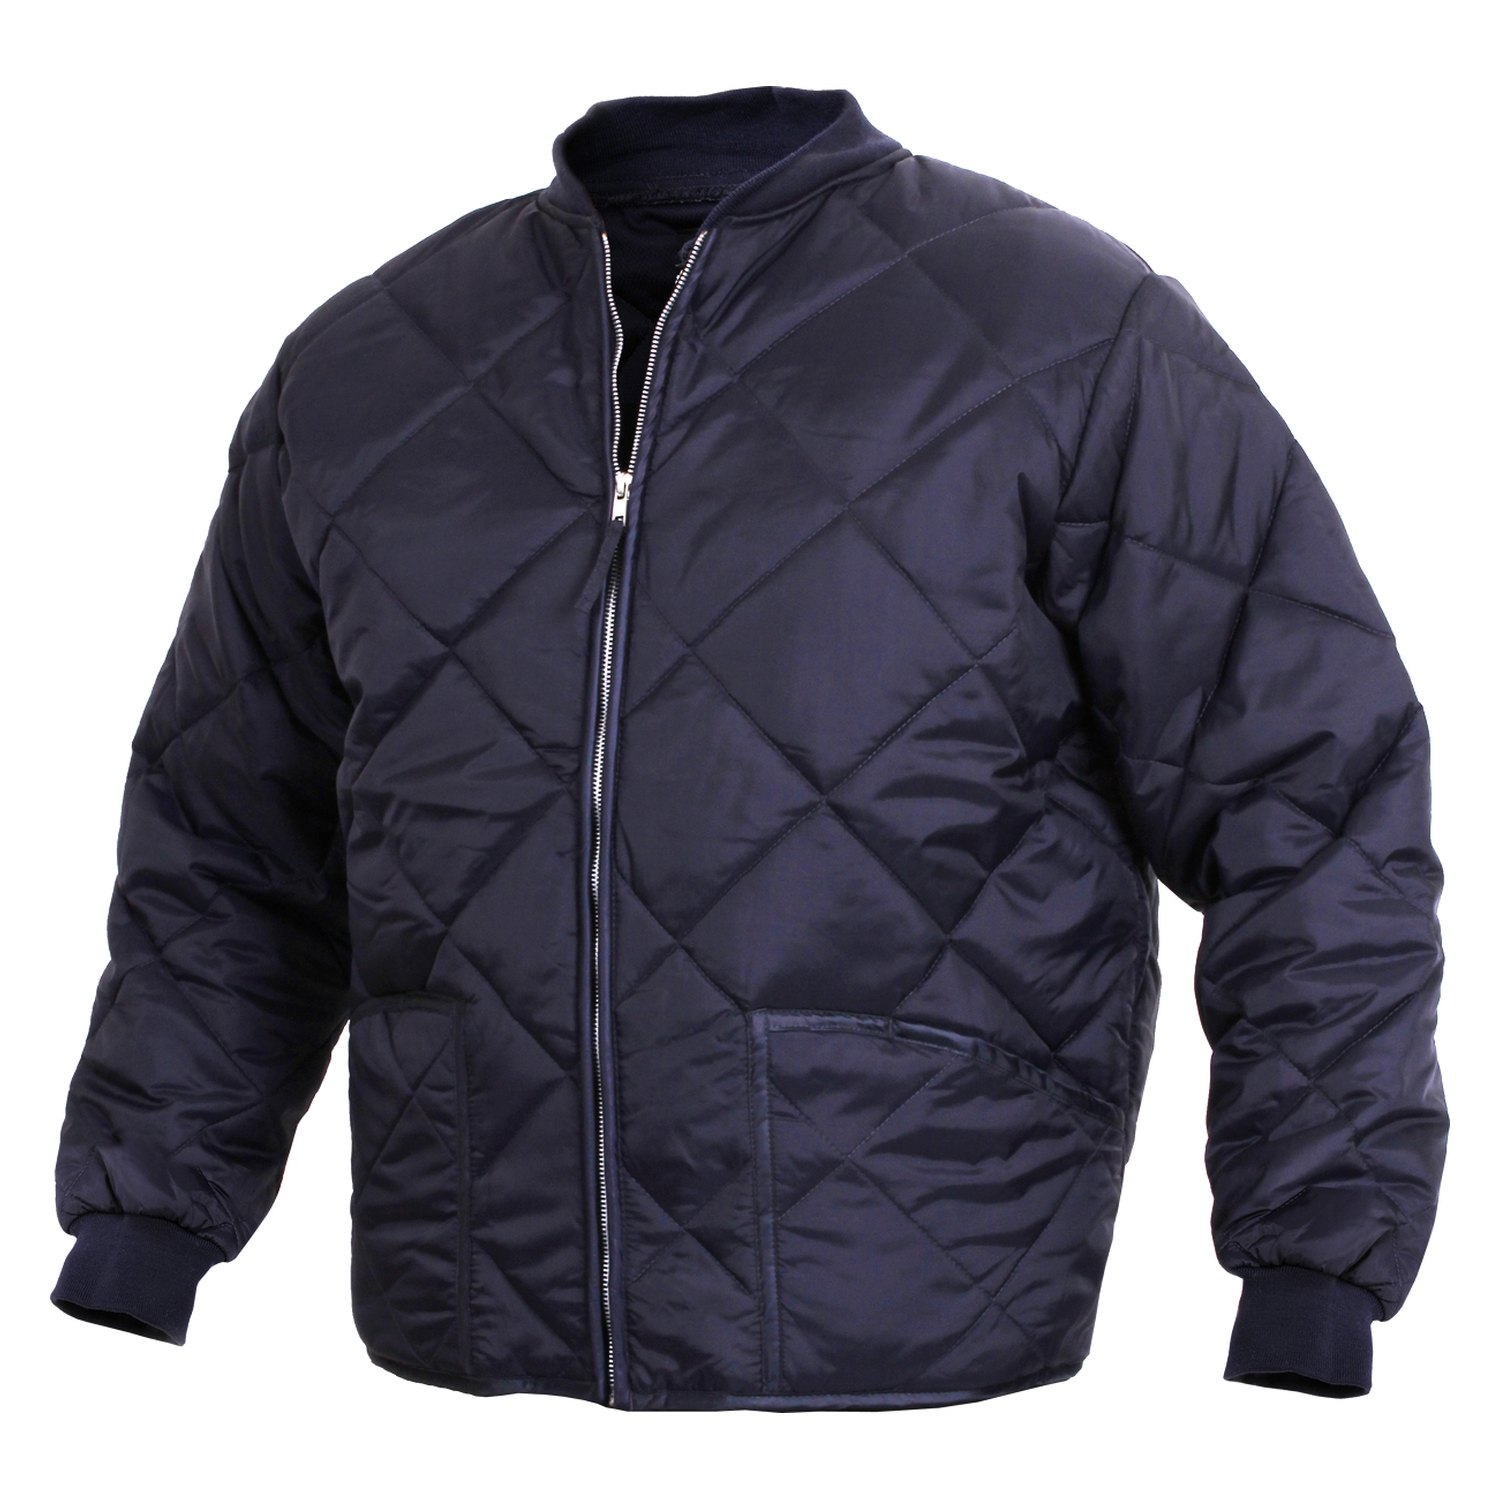 Rothco 174 Diamond Nylon Quilted Flight Jacket